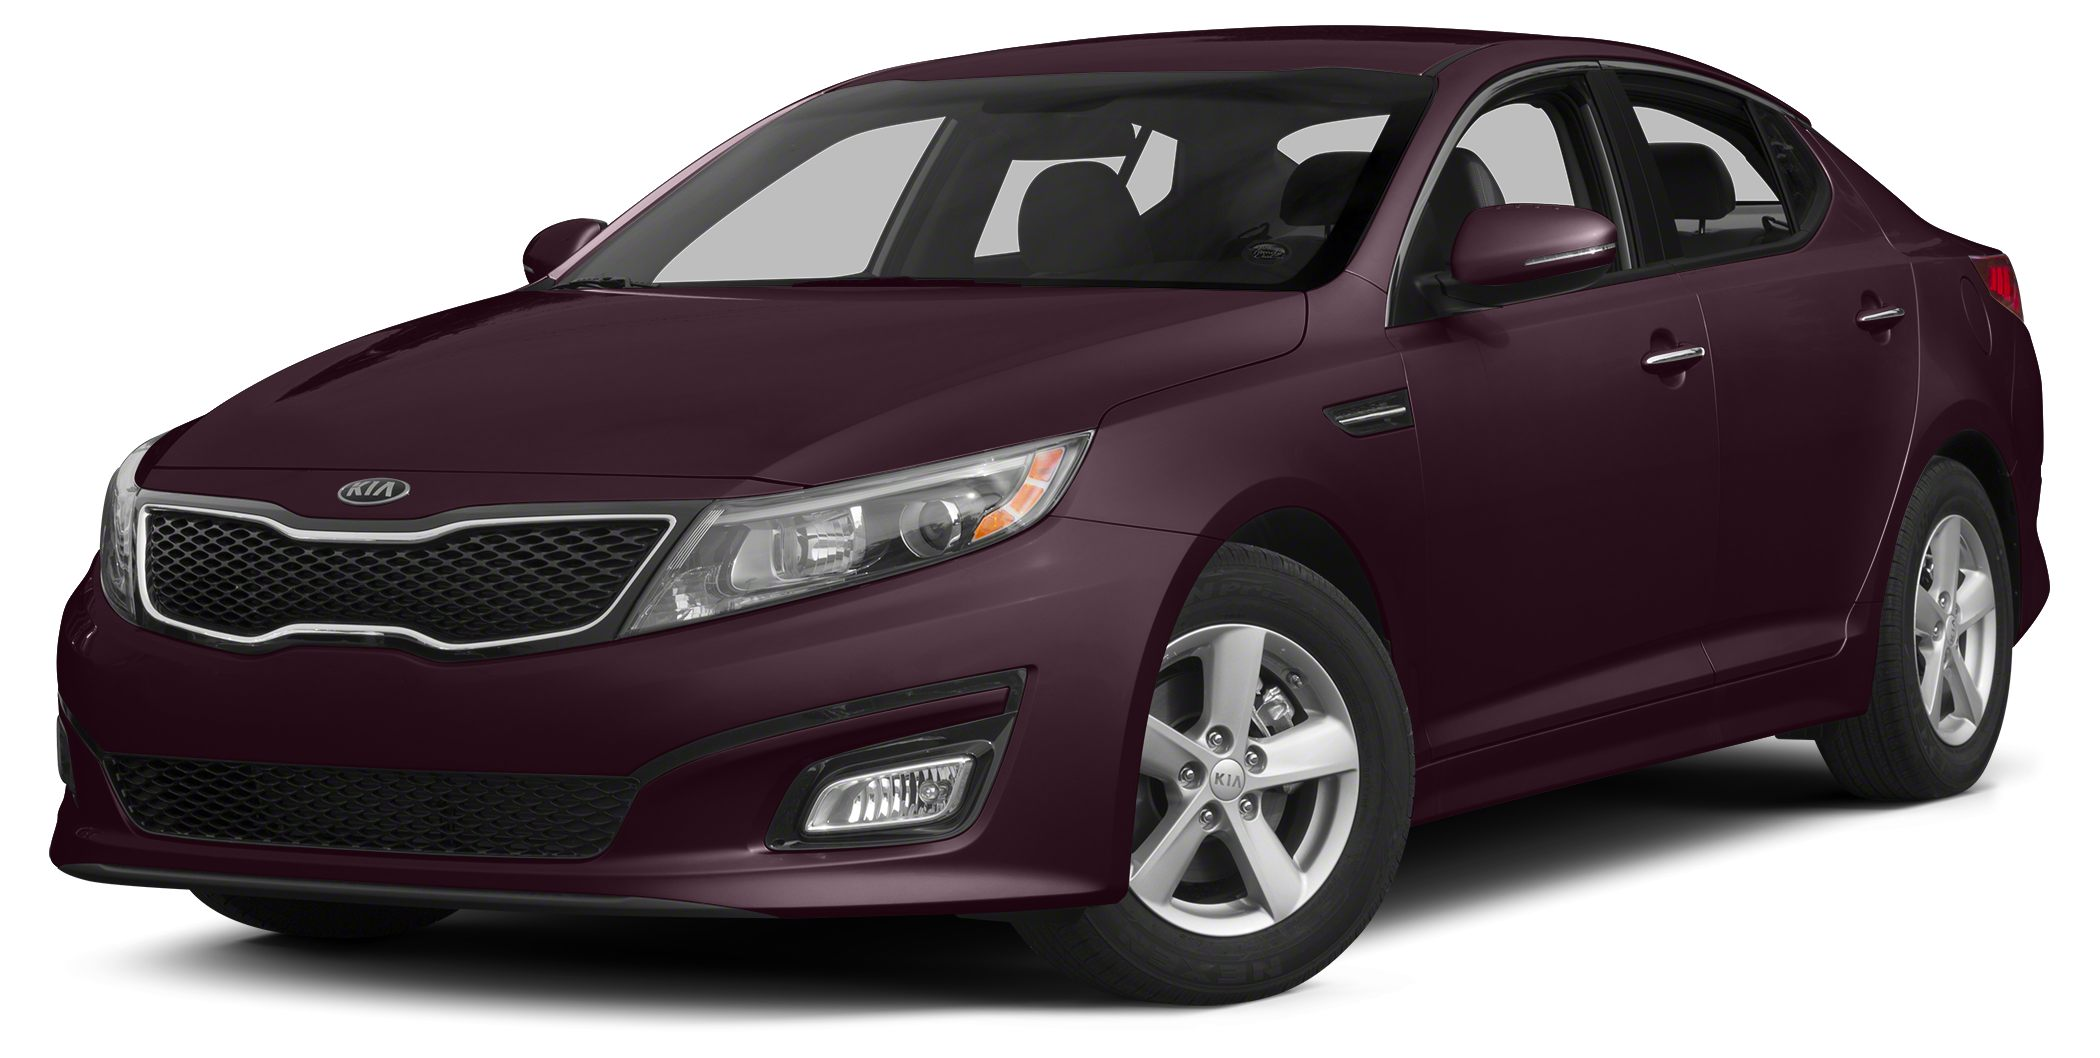 2015 Kia Optima LX Miles 43727Color Dark Cherry Stock SB16231A VIN 5XXGM4A70FG352525